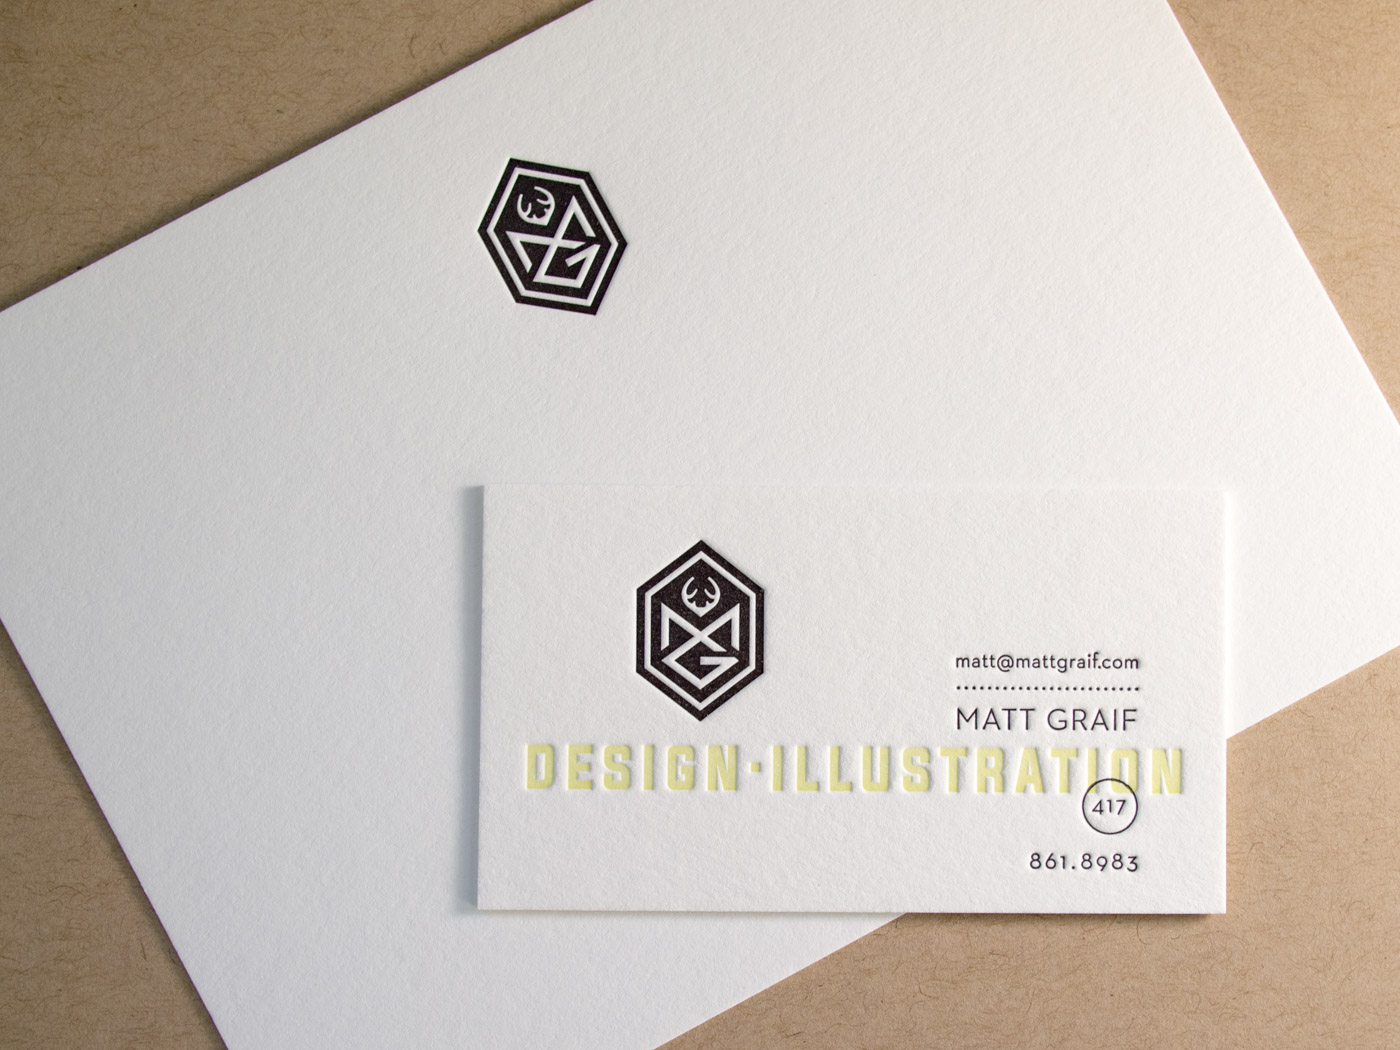 Matt Graif 2015 | Printed by Parklife Press